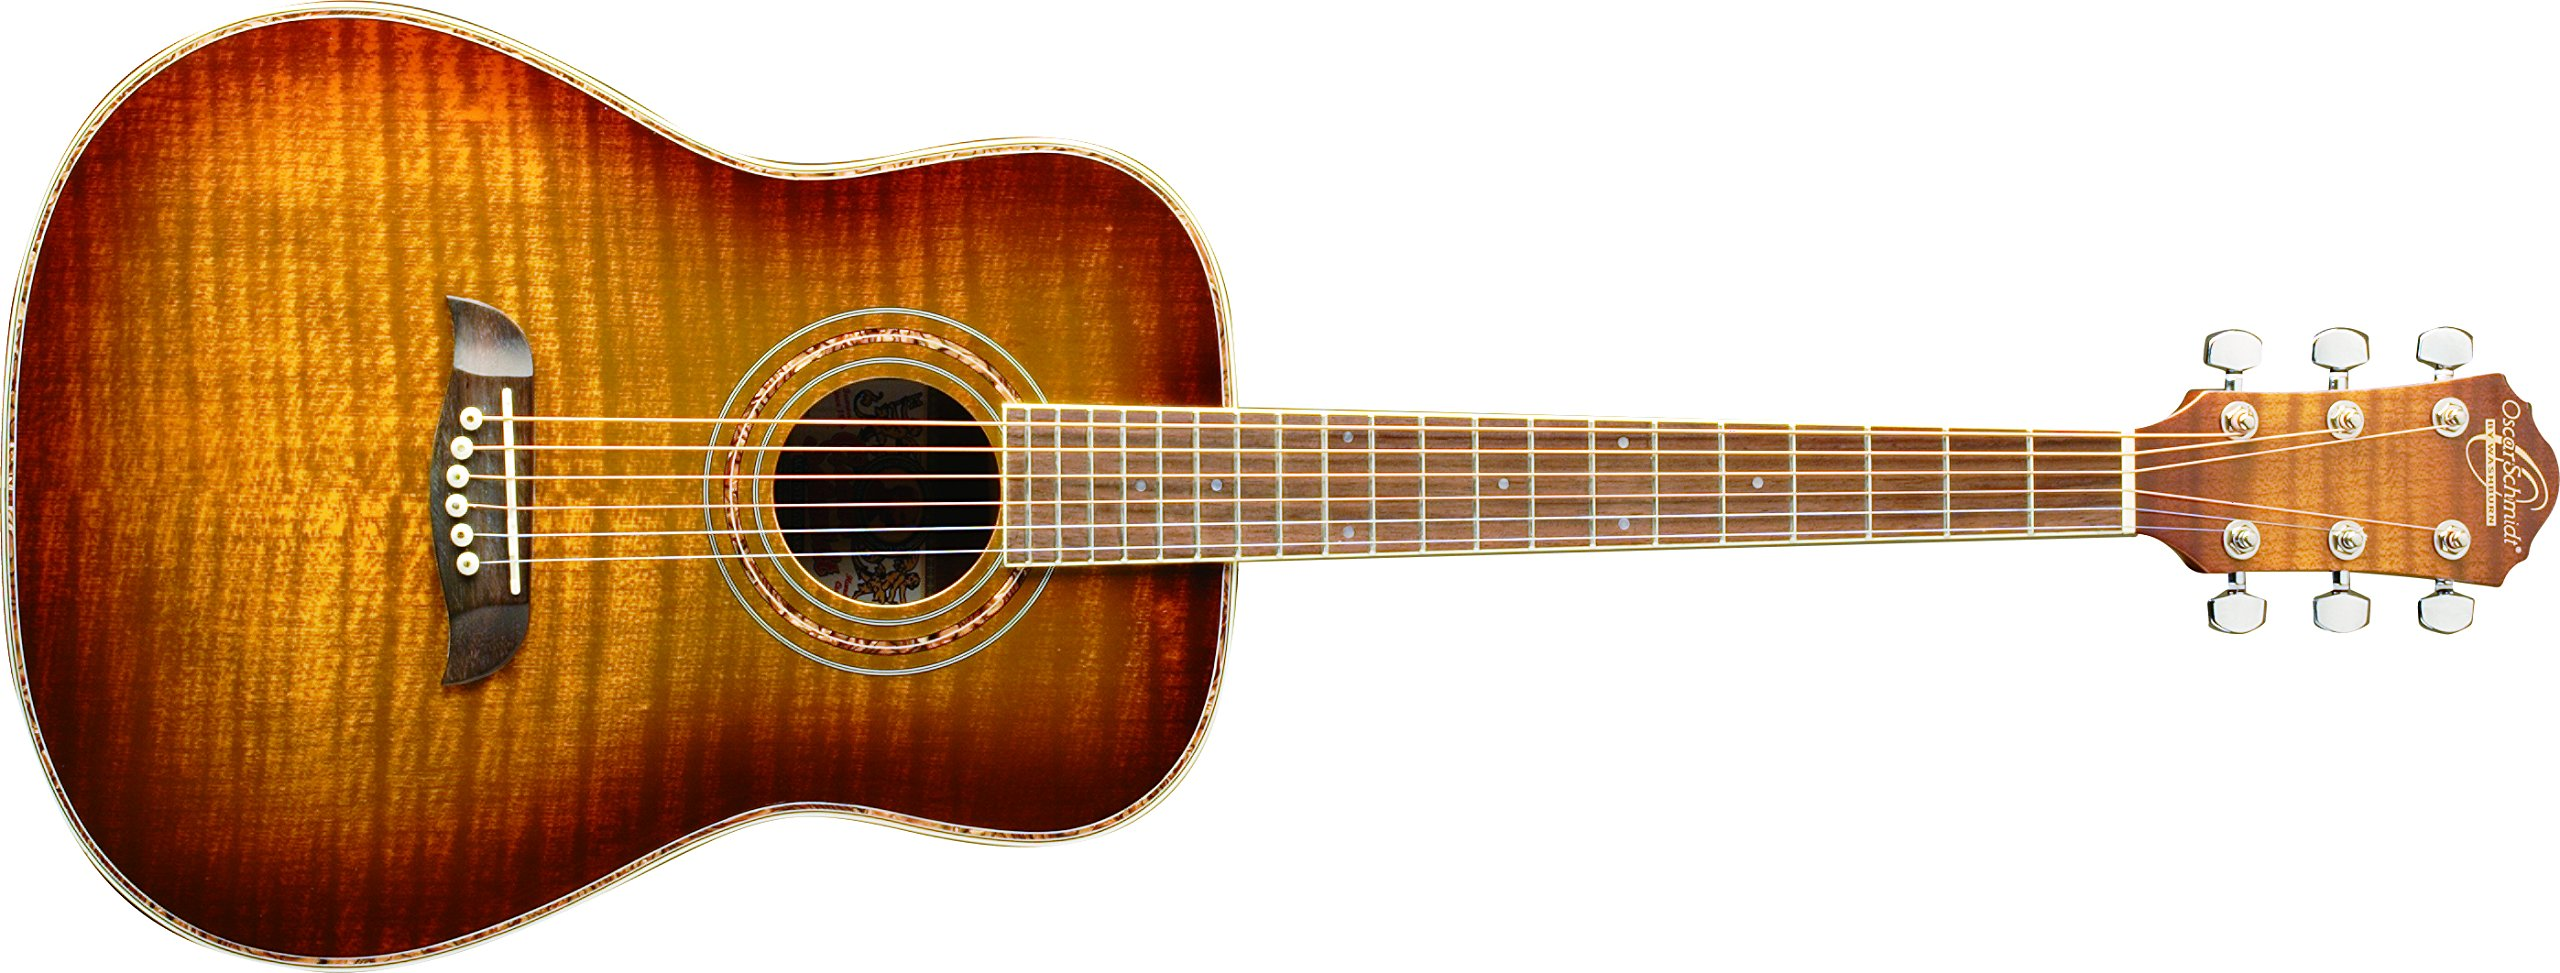 Oscar Schmidt OG1FYS-A-U 3/4 Size Dreadnought Acoustic Guitar (High Gloss)Flame Yellow Sunburst by Oscar Schmidt